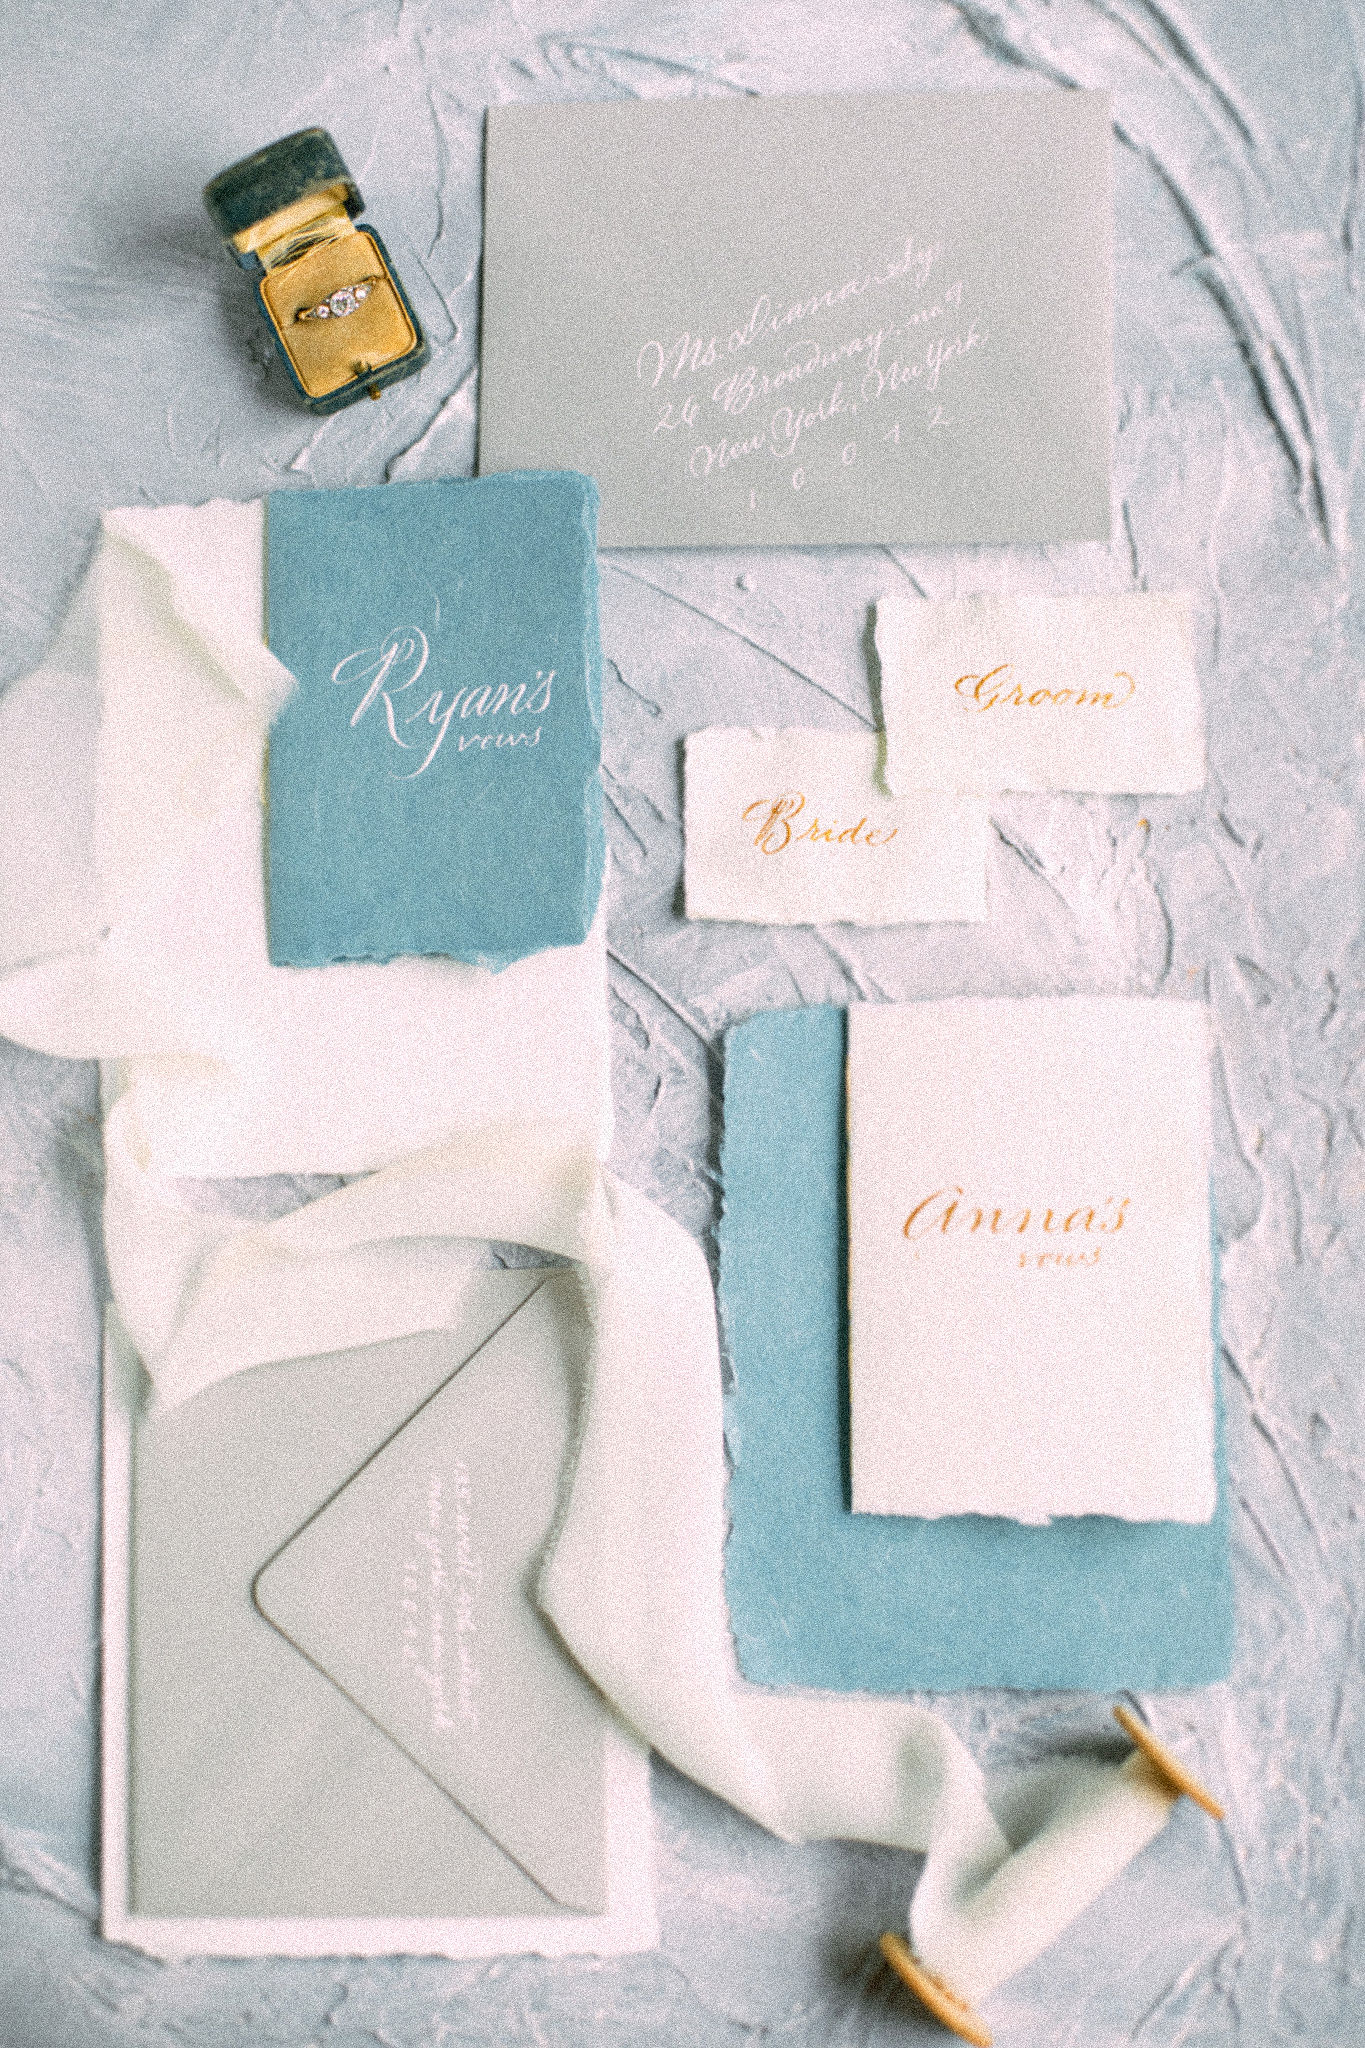 Hand-made paper and calligraphy for wedding vows and place cards | www.chavelli.com